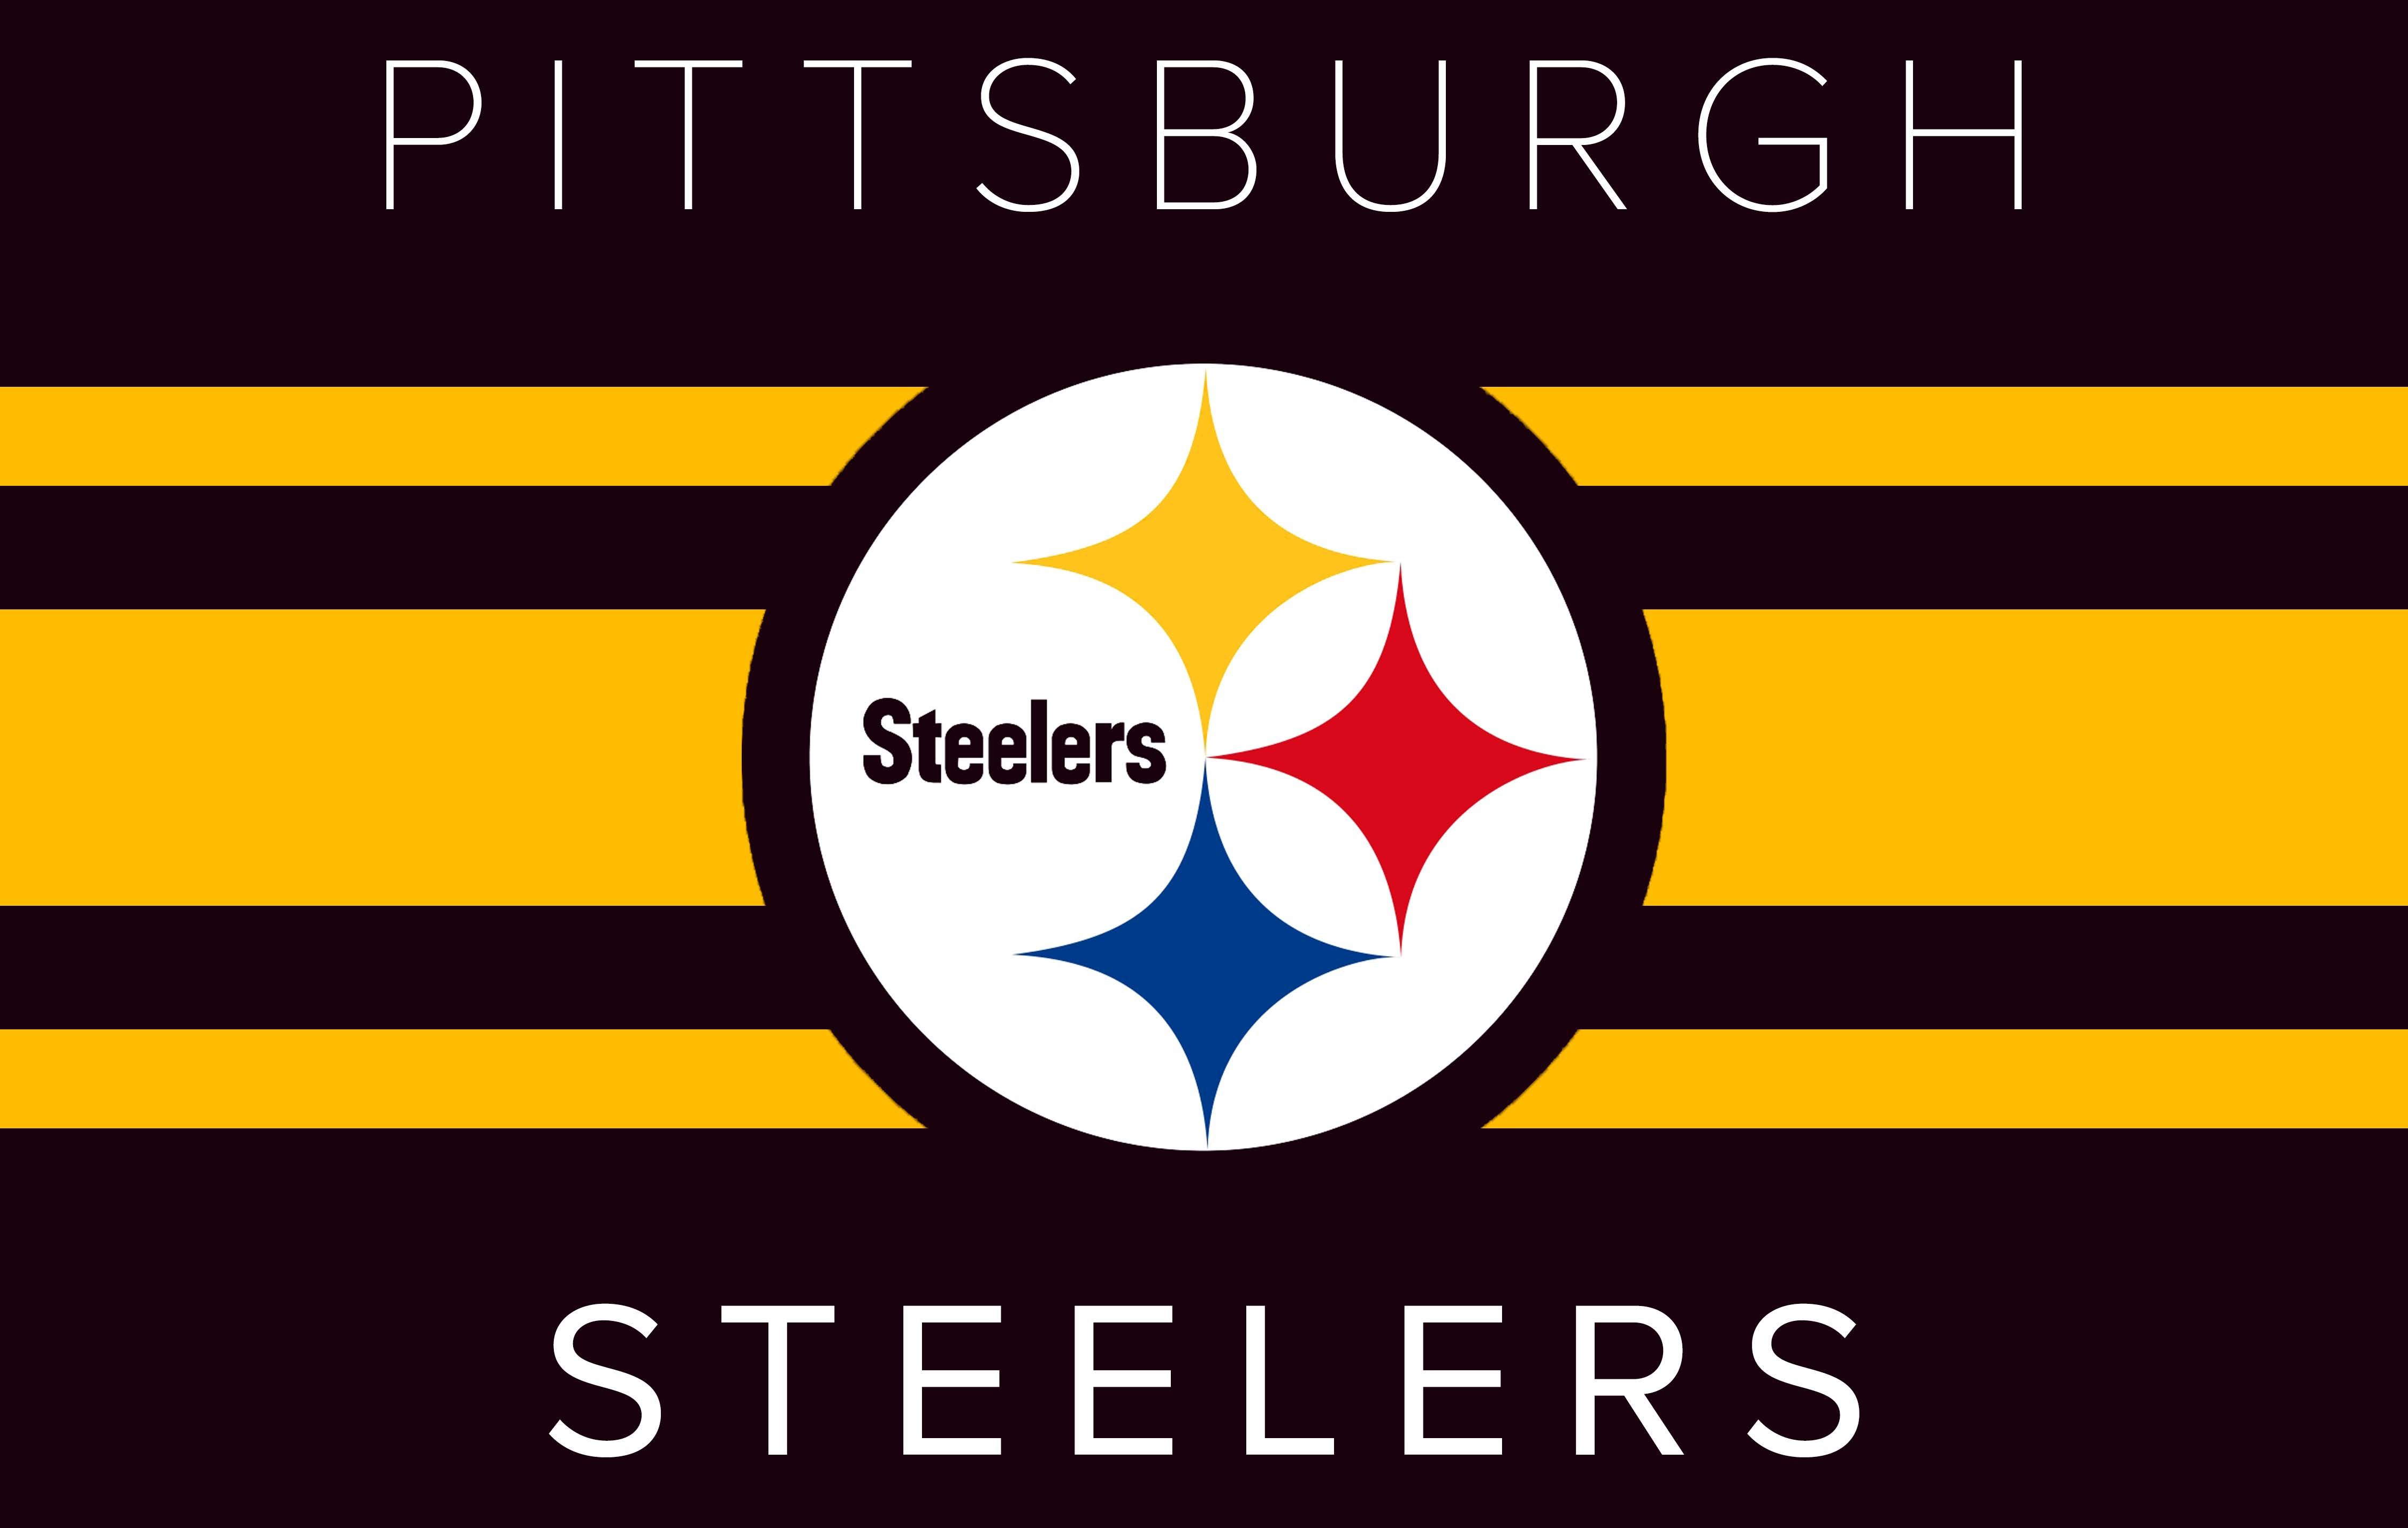 PittsburghSteelerswallpaper.jpg (4500×2856) Pittsburgh